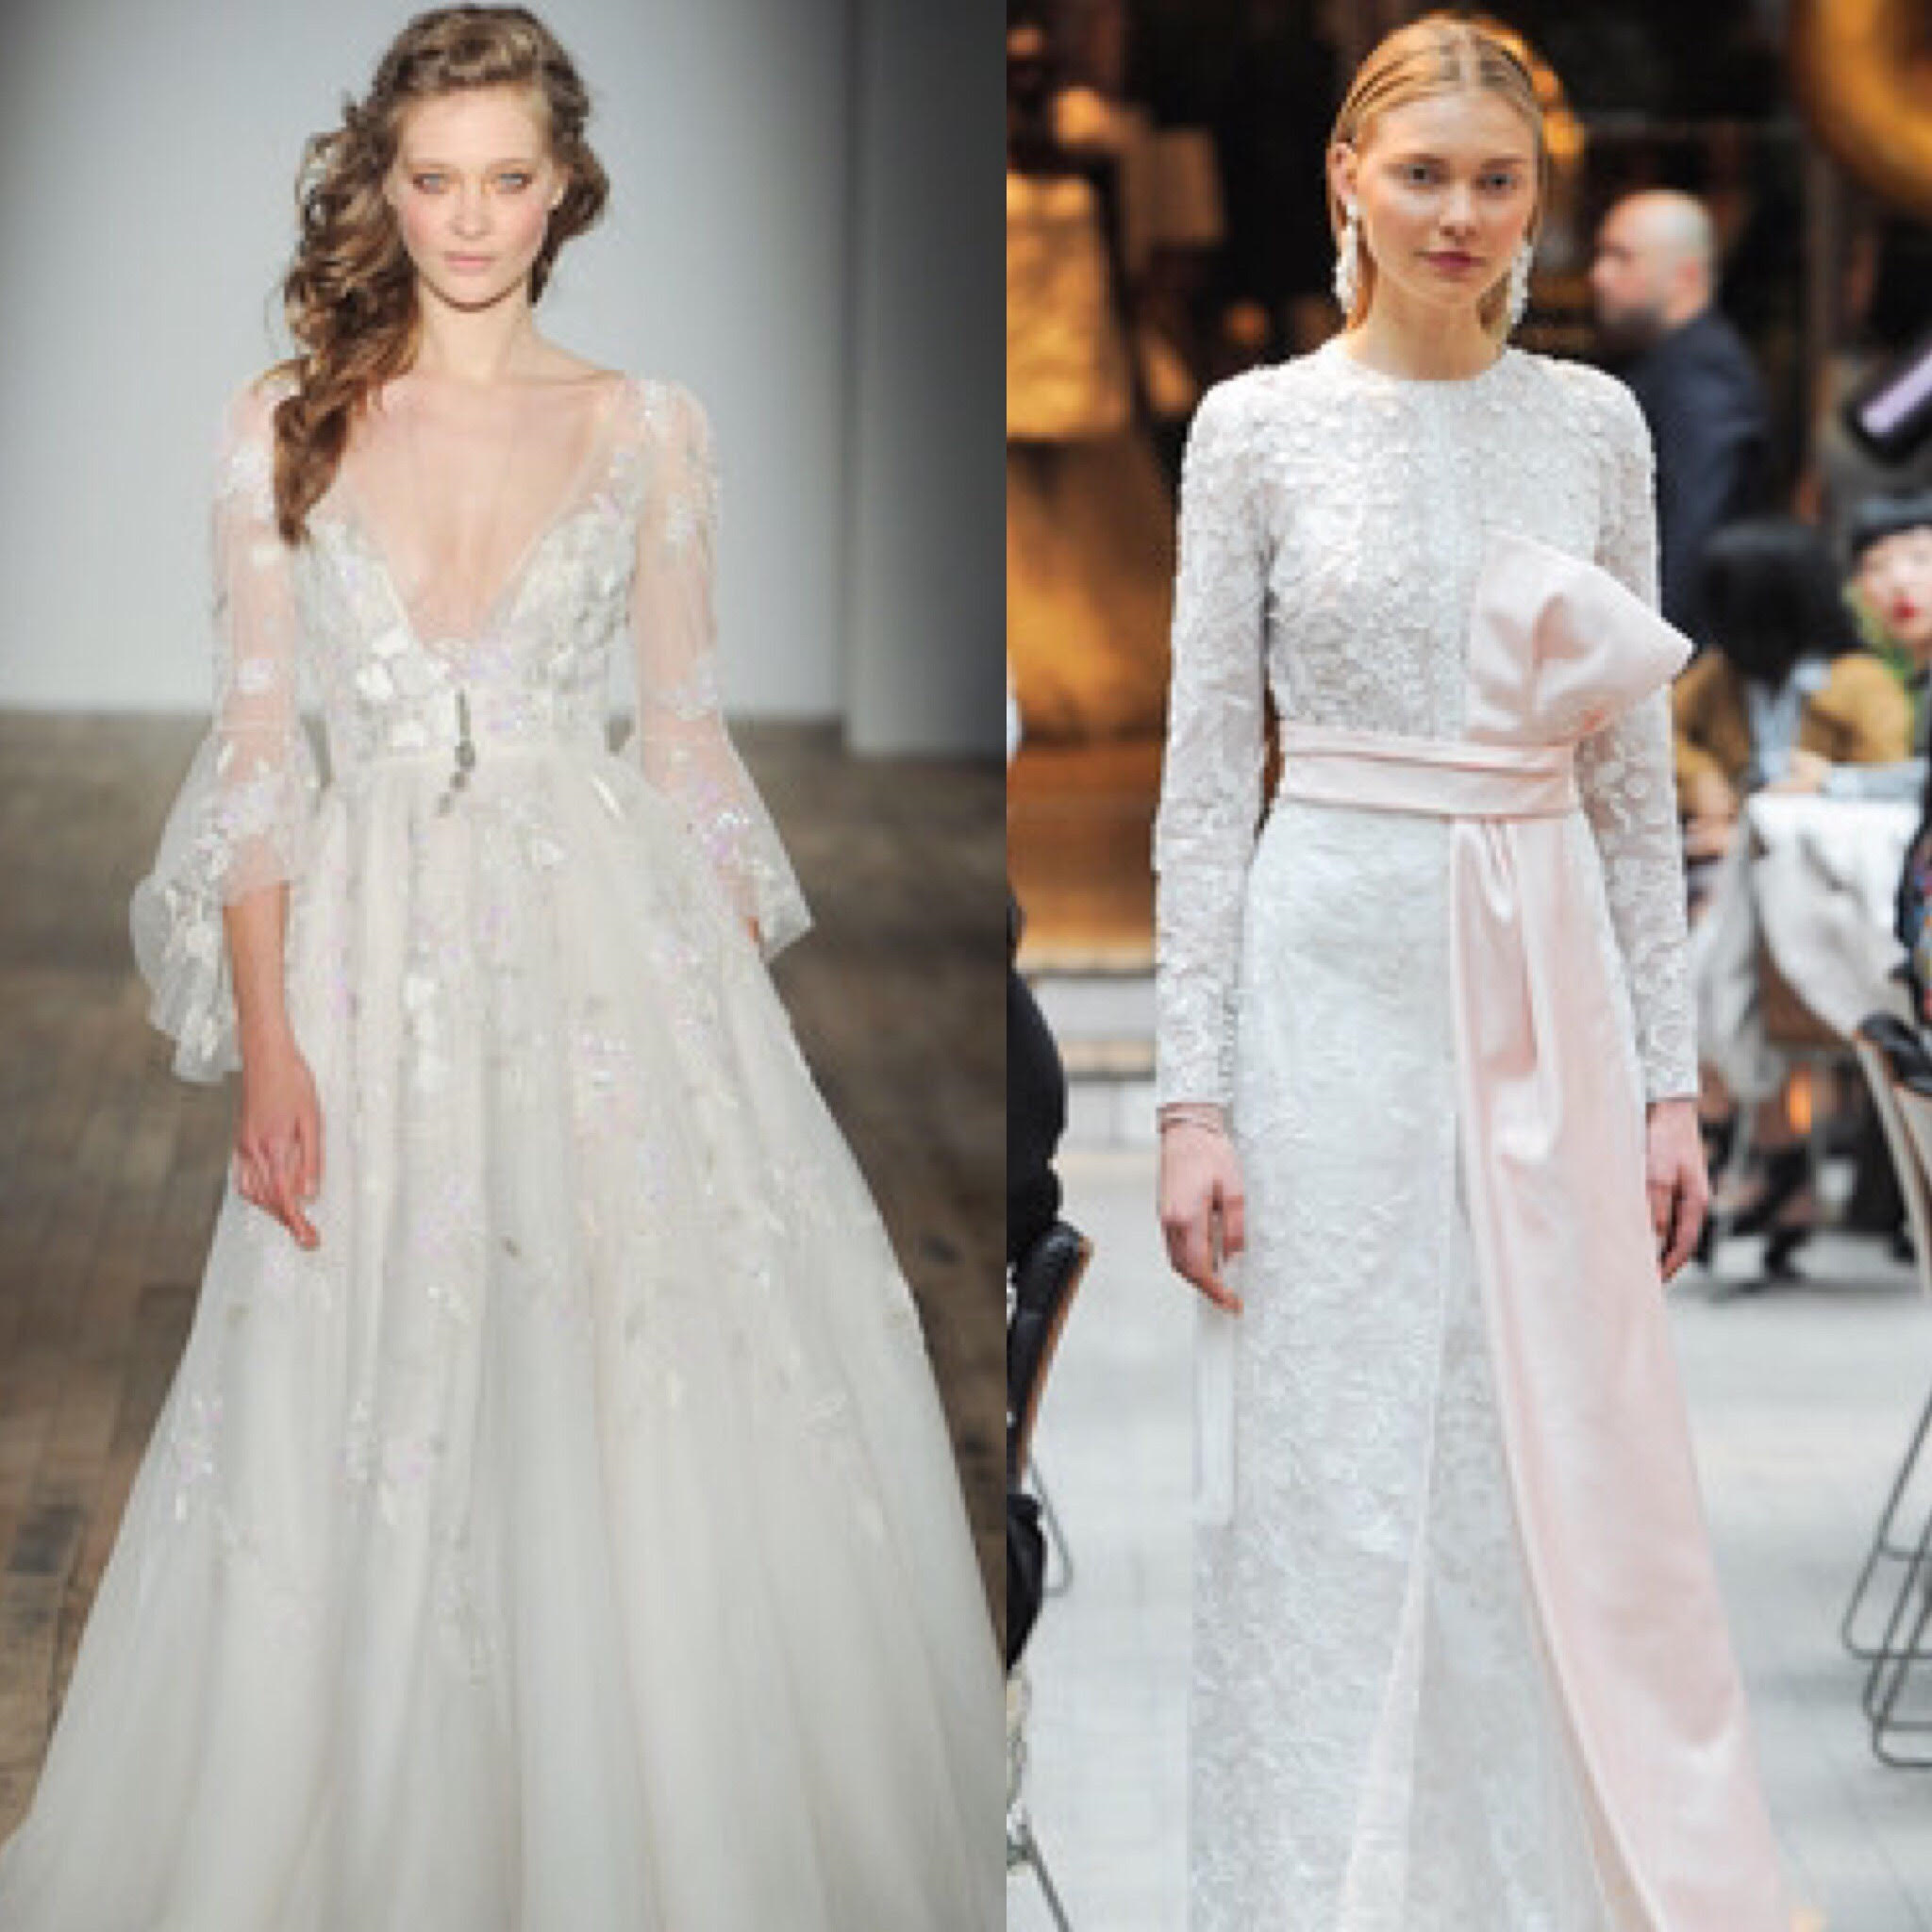 Wedding Dress Shopping Tips From A Real Bride-to-Be! | Wedding dress ...